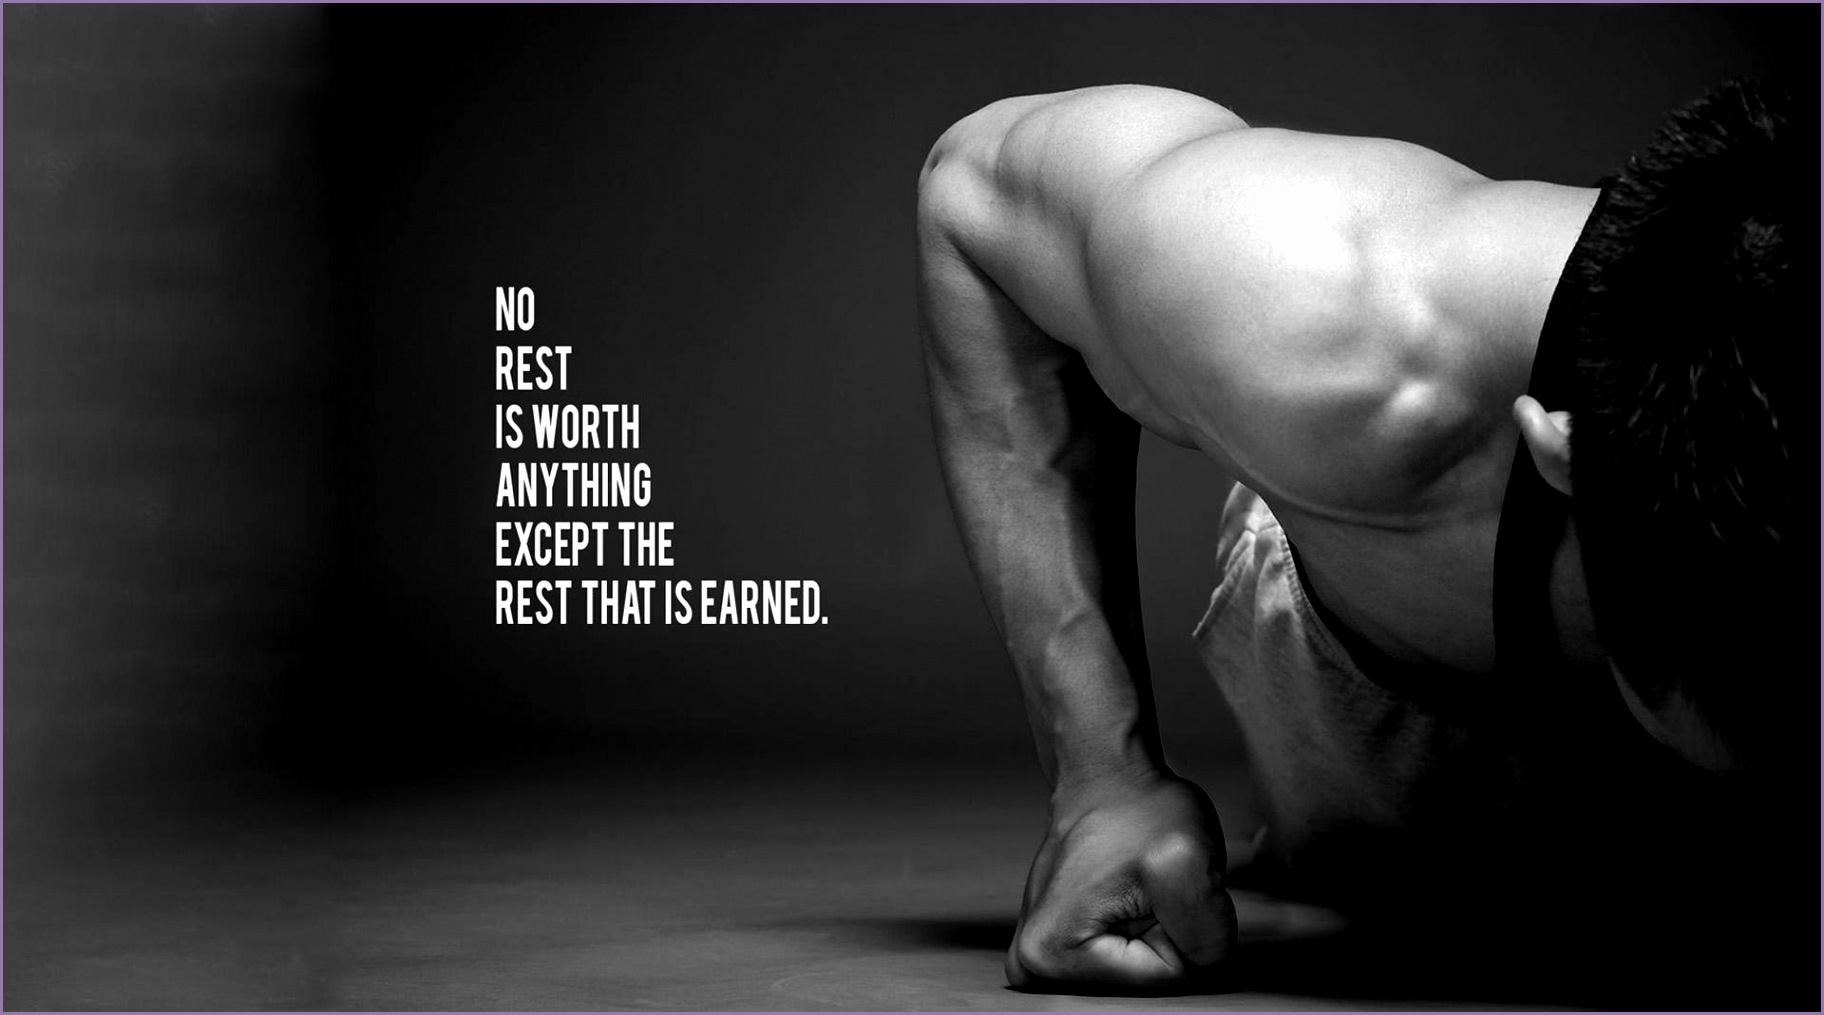 7 Fitness Motivation Men Wallpaper